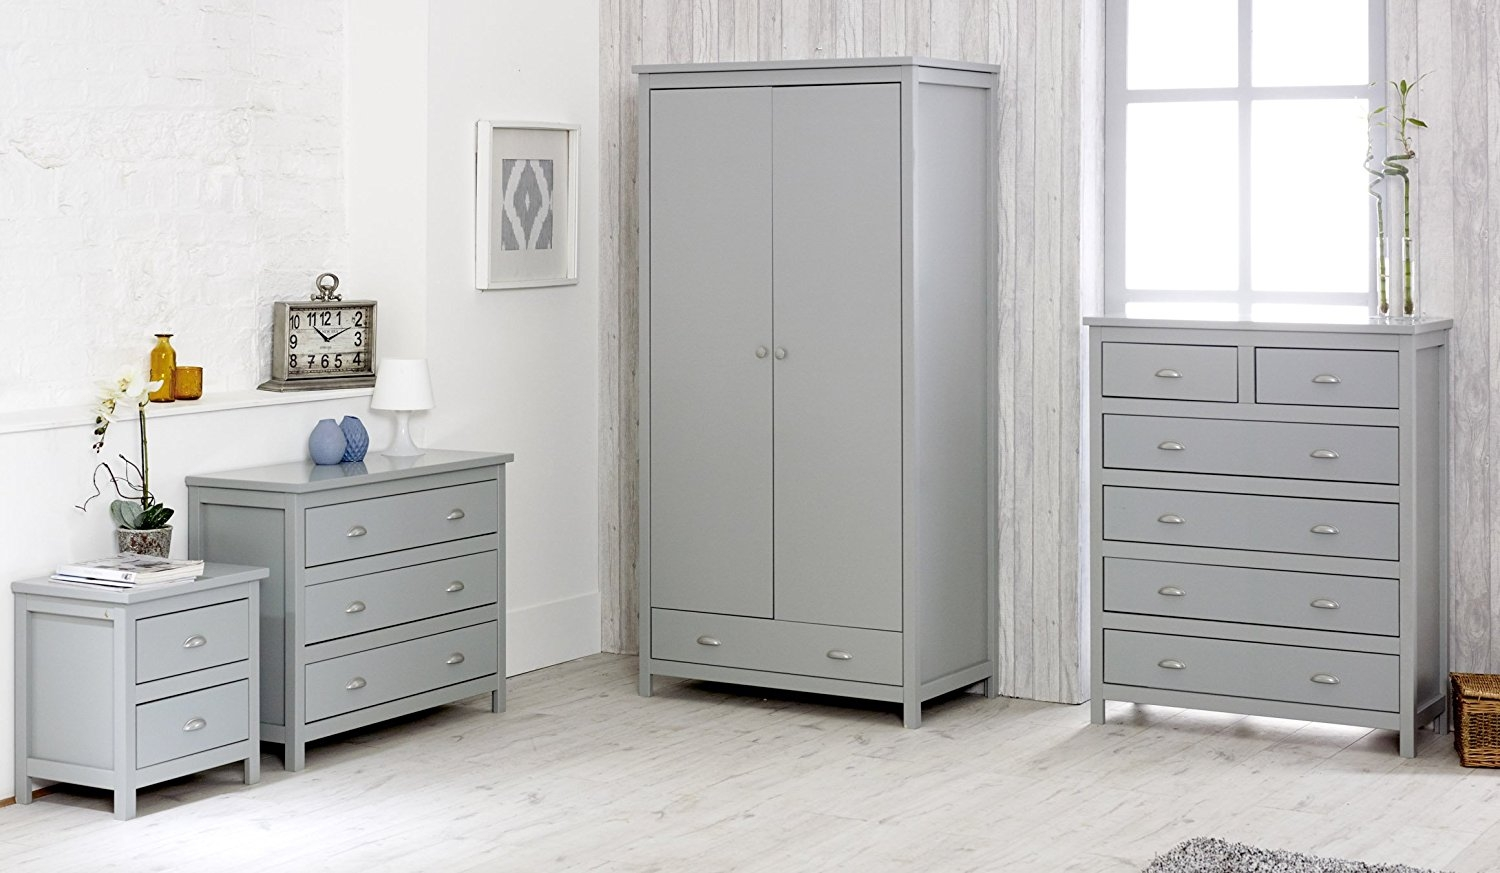 Kingston Grey Wooden Bedroom Furniture Collection